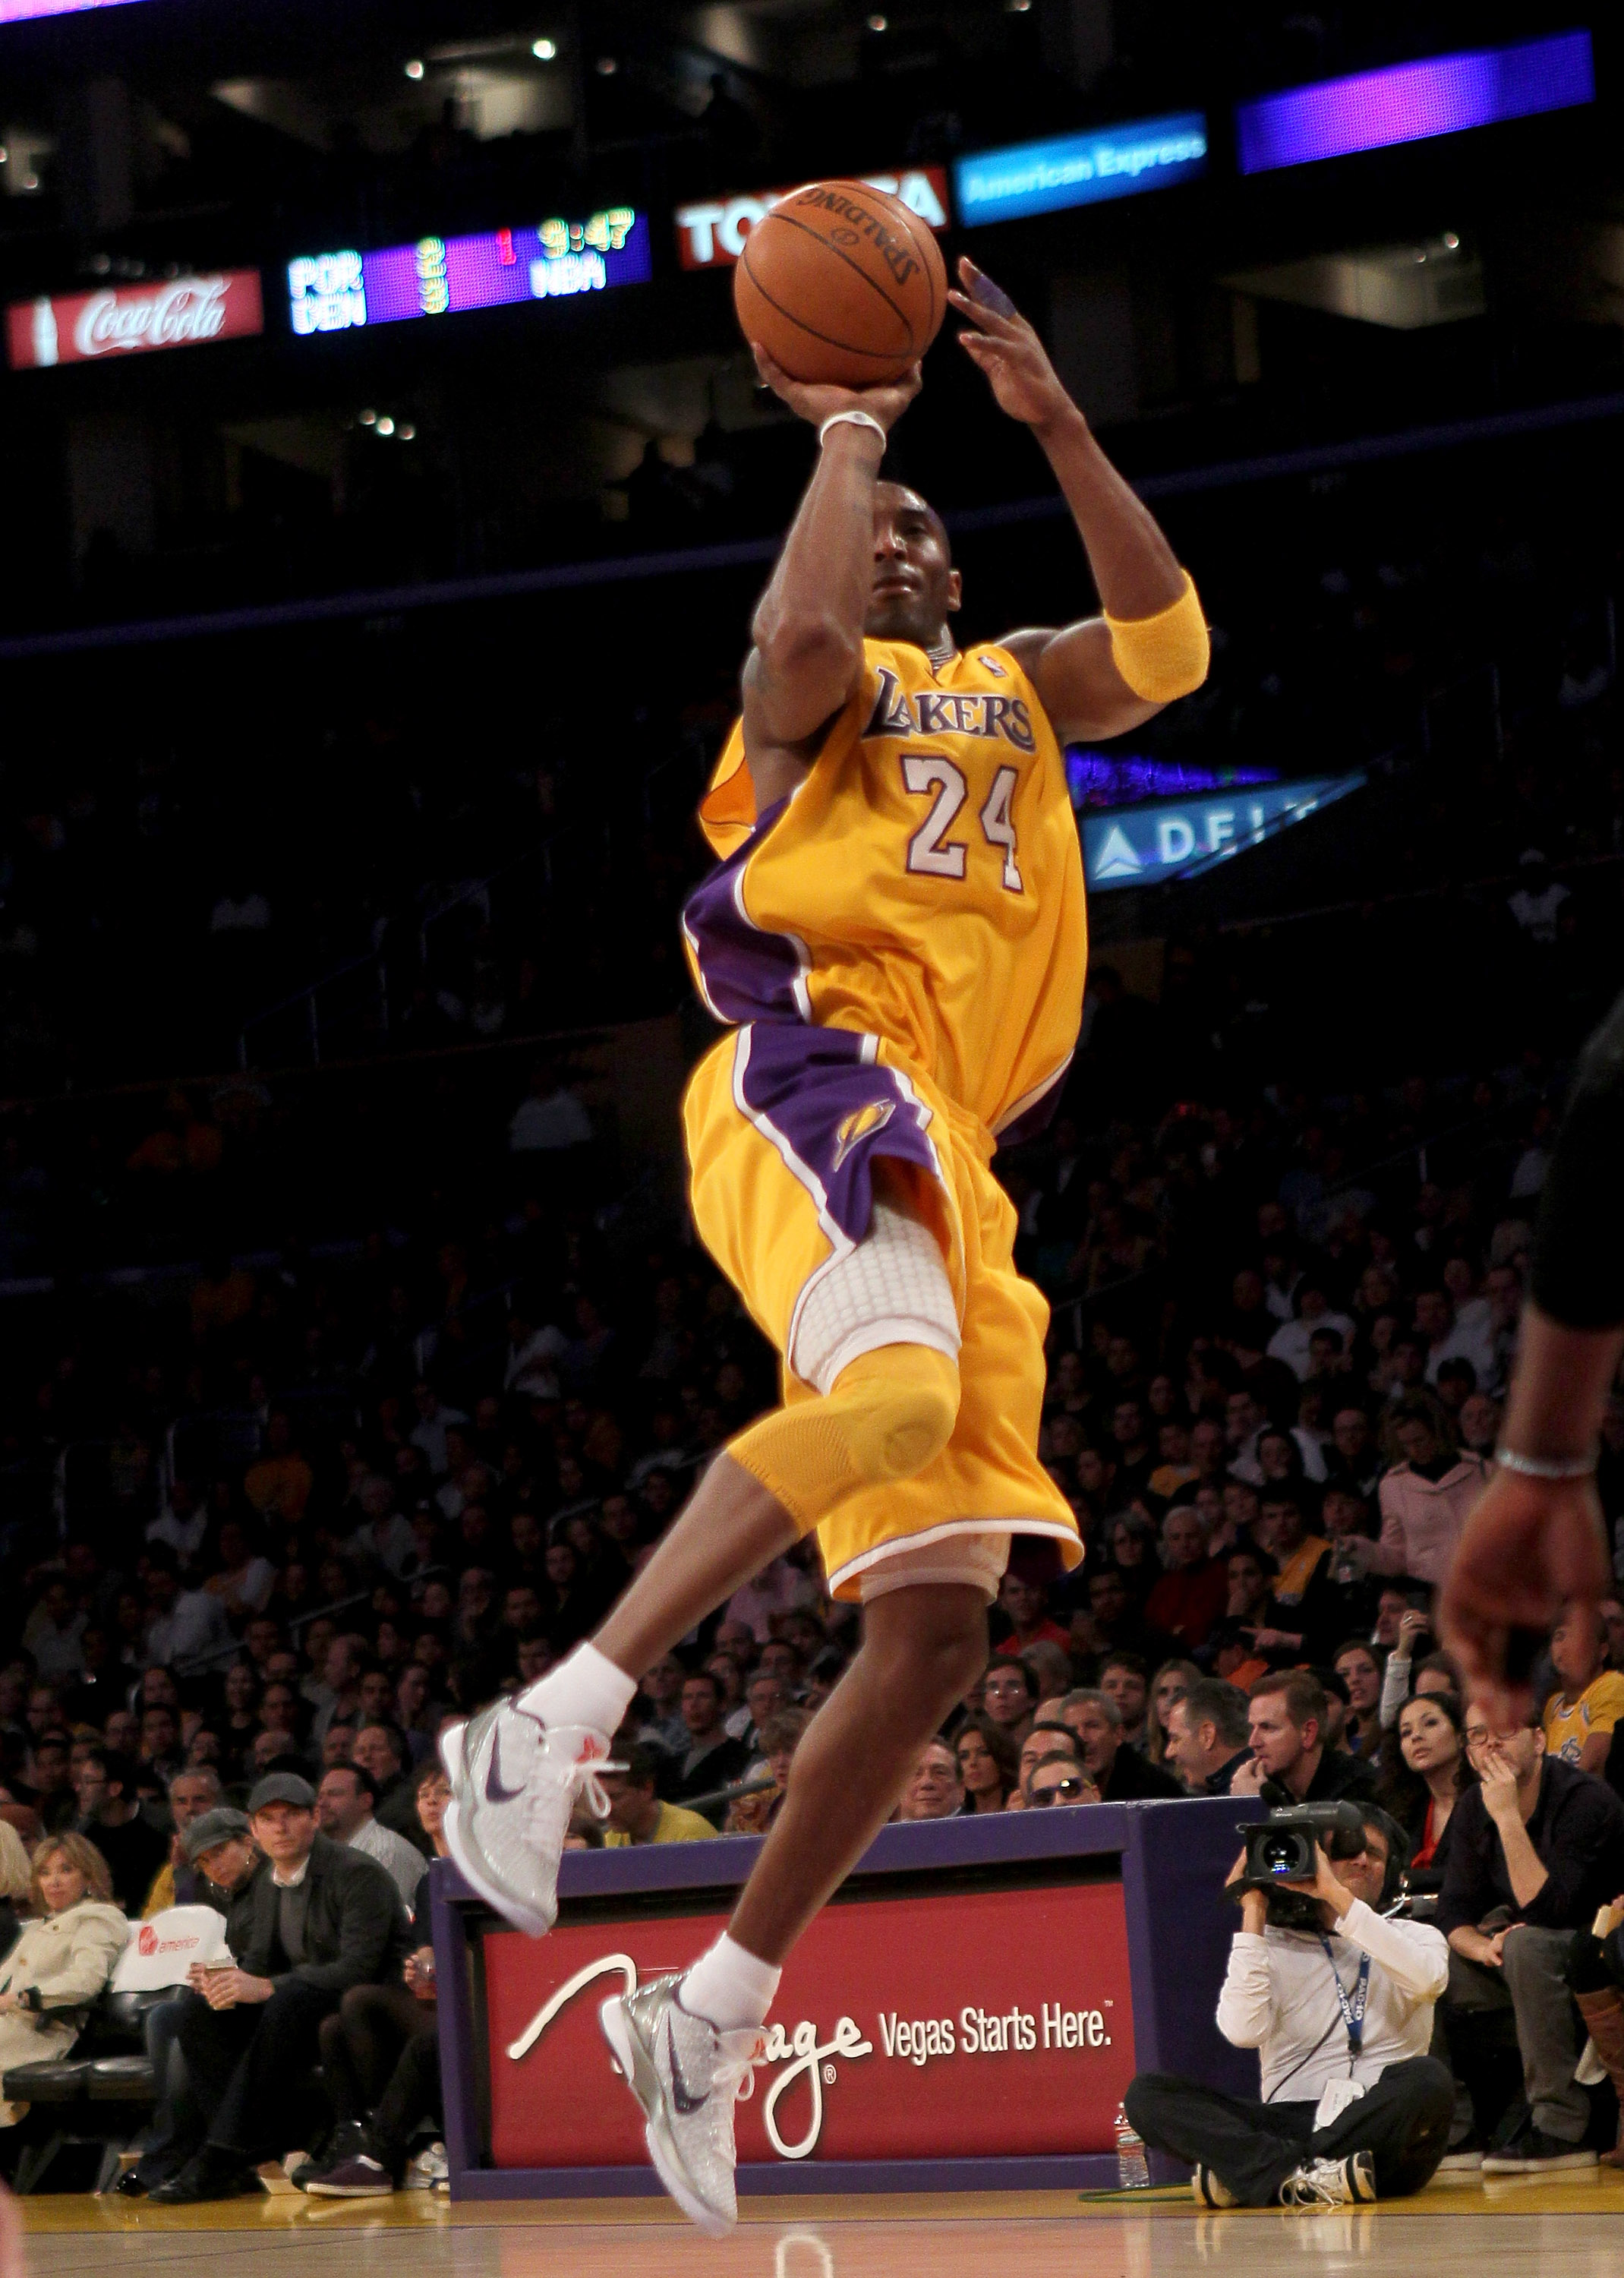 LOS ANGELES, CA - FEBRUARY 25:  Kobe Brynat #24 of the Los Angeles Lakers shoots against the Los Angeles Clippers at Staples Center on February 25, 2011 in Los Angeles, California. The Lakers won 108-95.  NOTE TO USER: User expressly acknowledges and agre